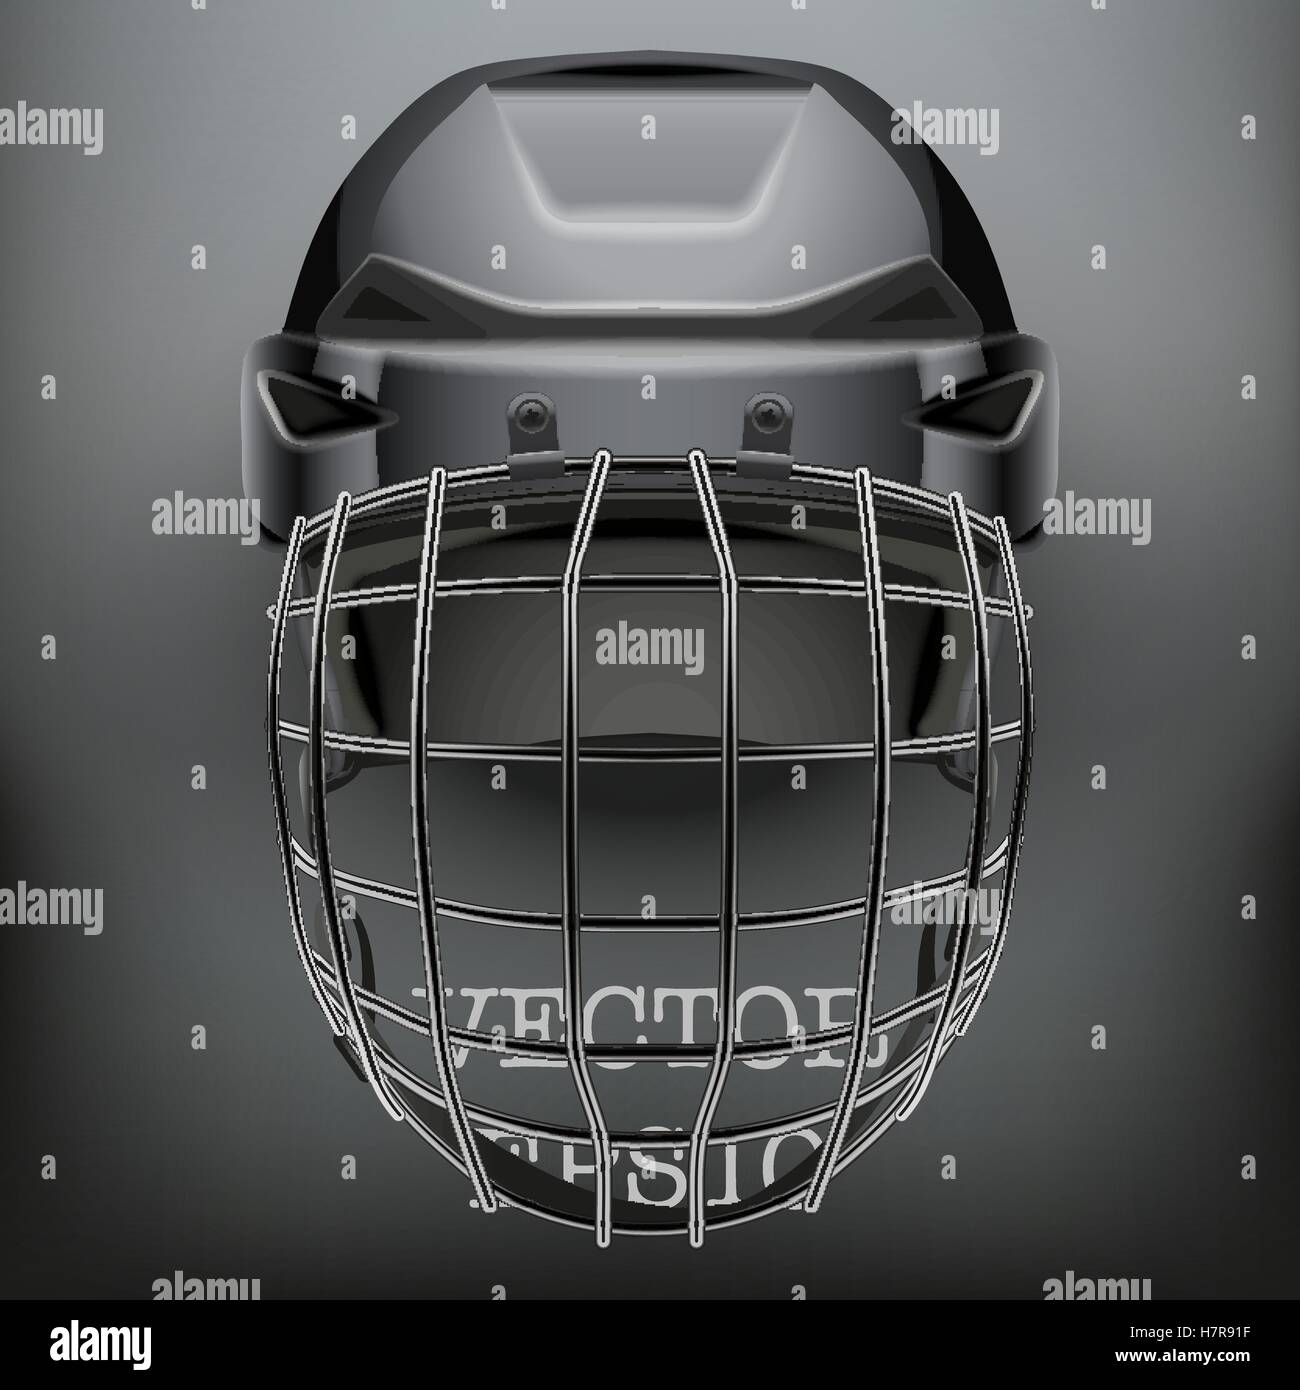 Classic Goalkeeper Ice and Field Hockey Helmet on dark Background. Copy space for text. Sport Equipment. Editable - Stock Image